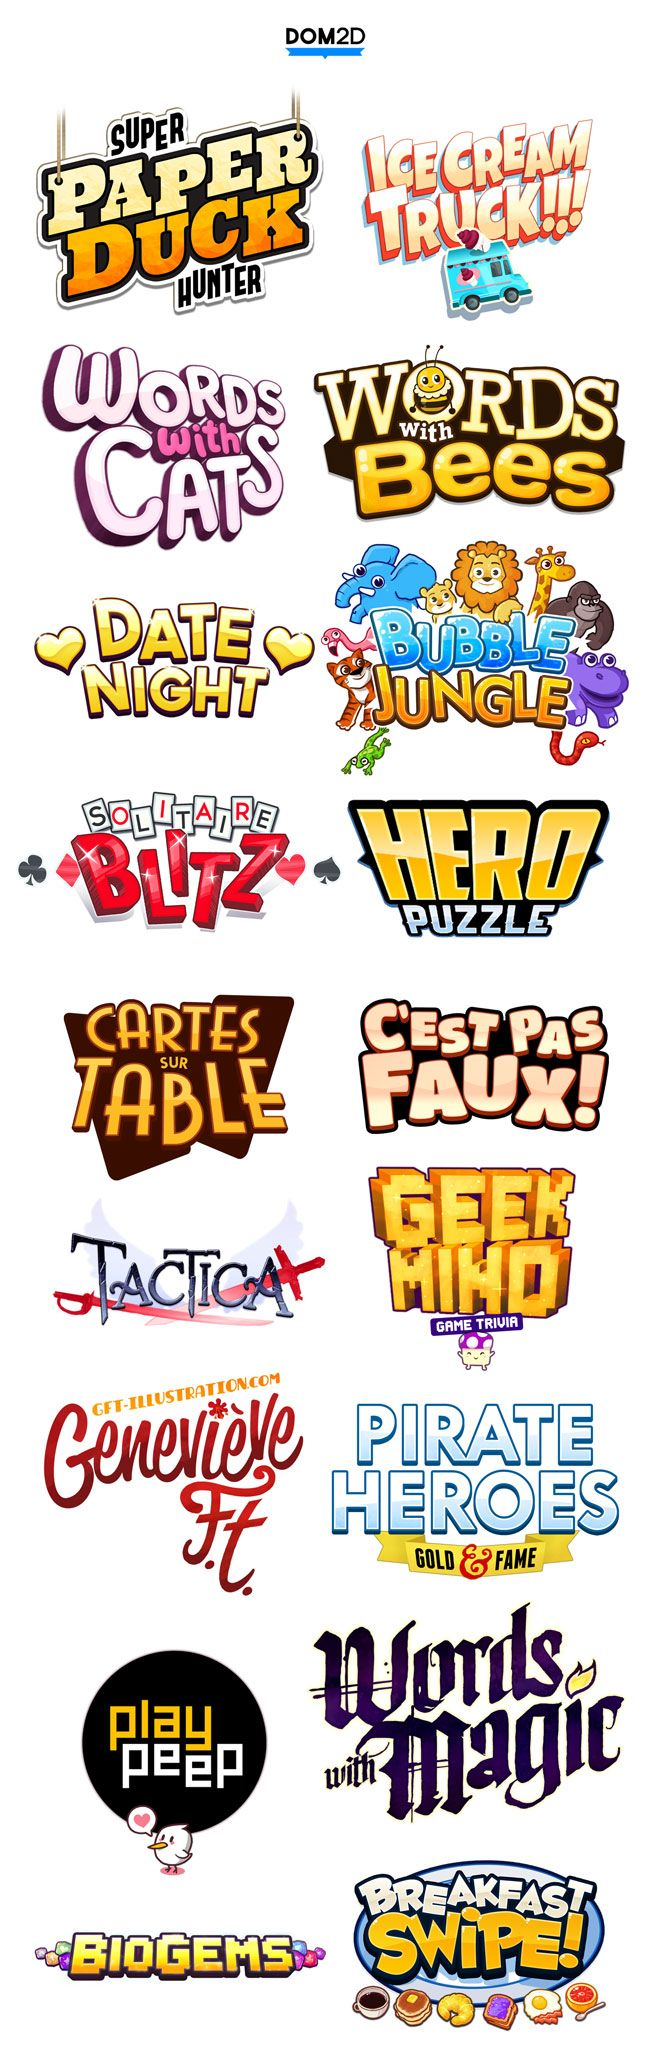 AWESOME game cartoony funky inspiring colorful cheerful funny logo inspiration. Good for all kinds of graphic design and marketing, mobile apps or games. Check out my work on www.Dribbble.com/vmdx Más